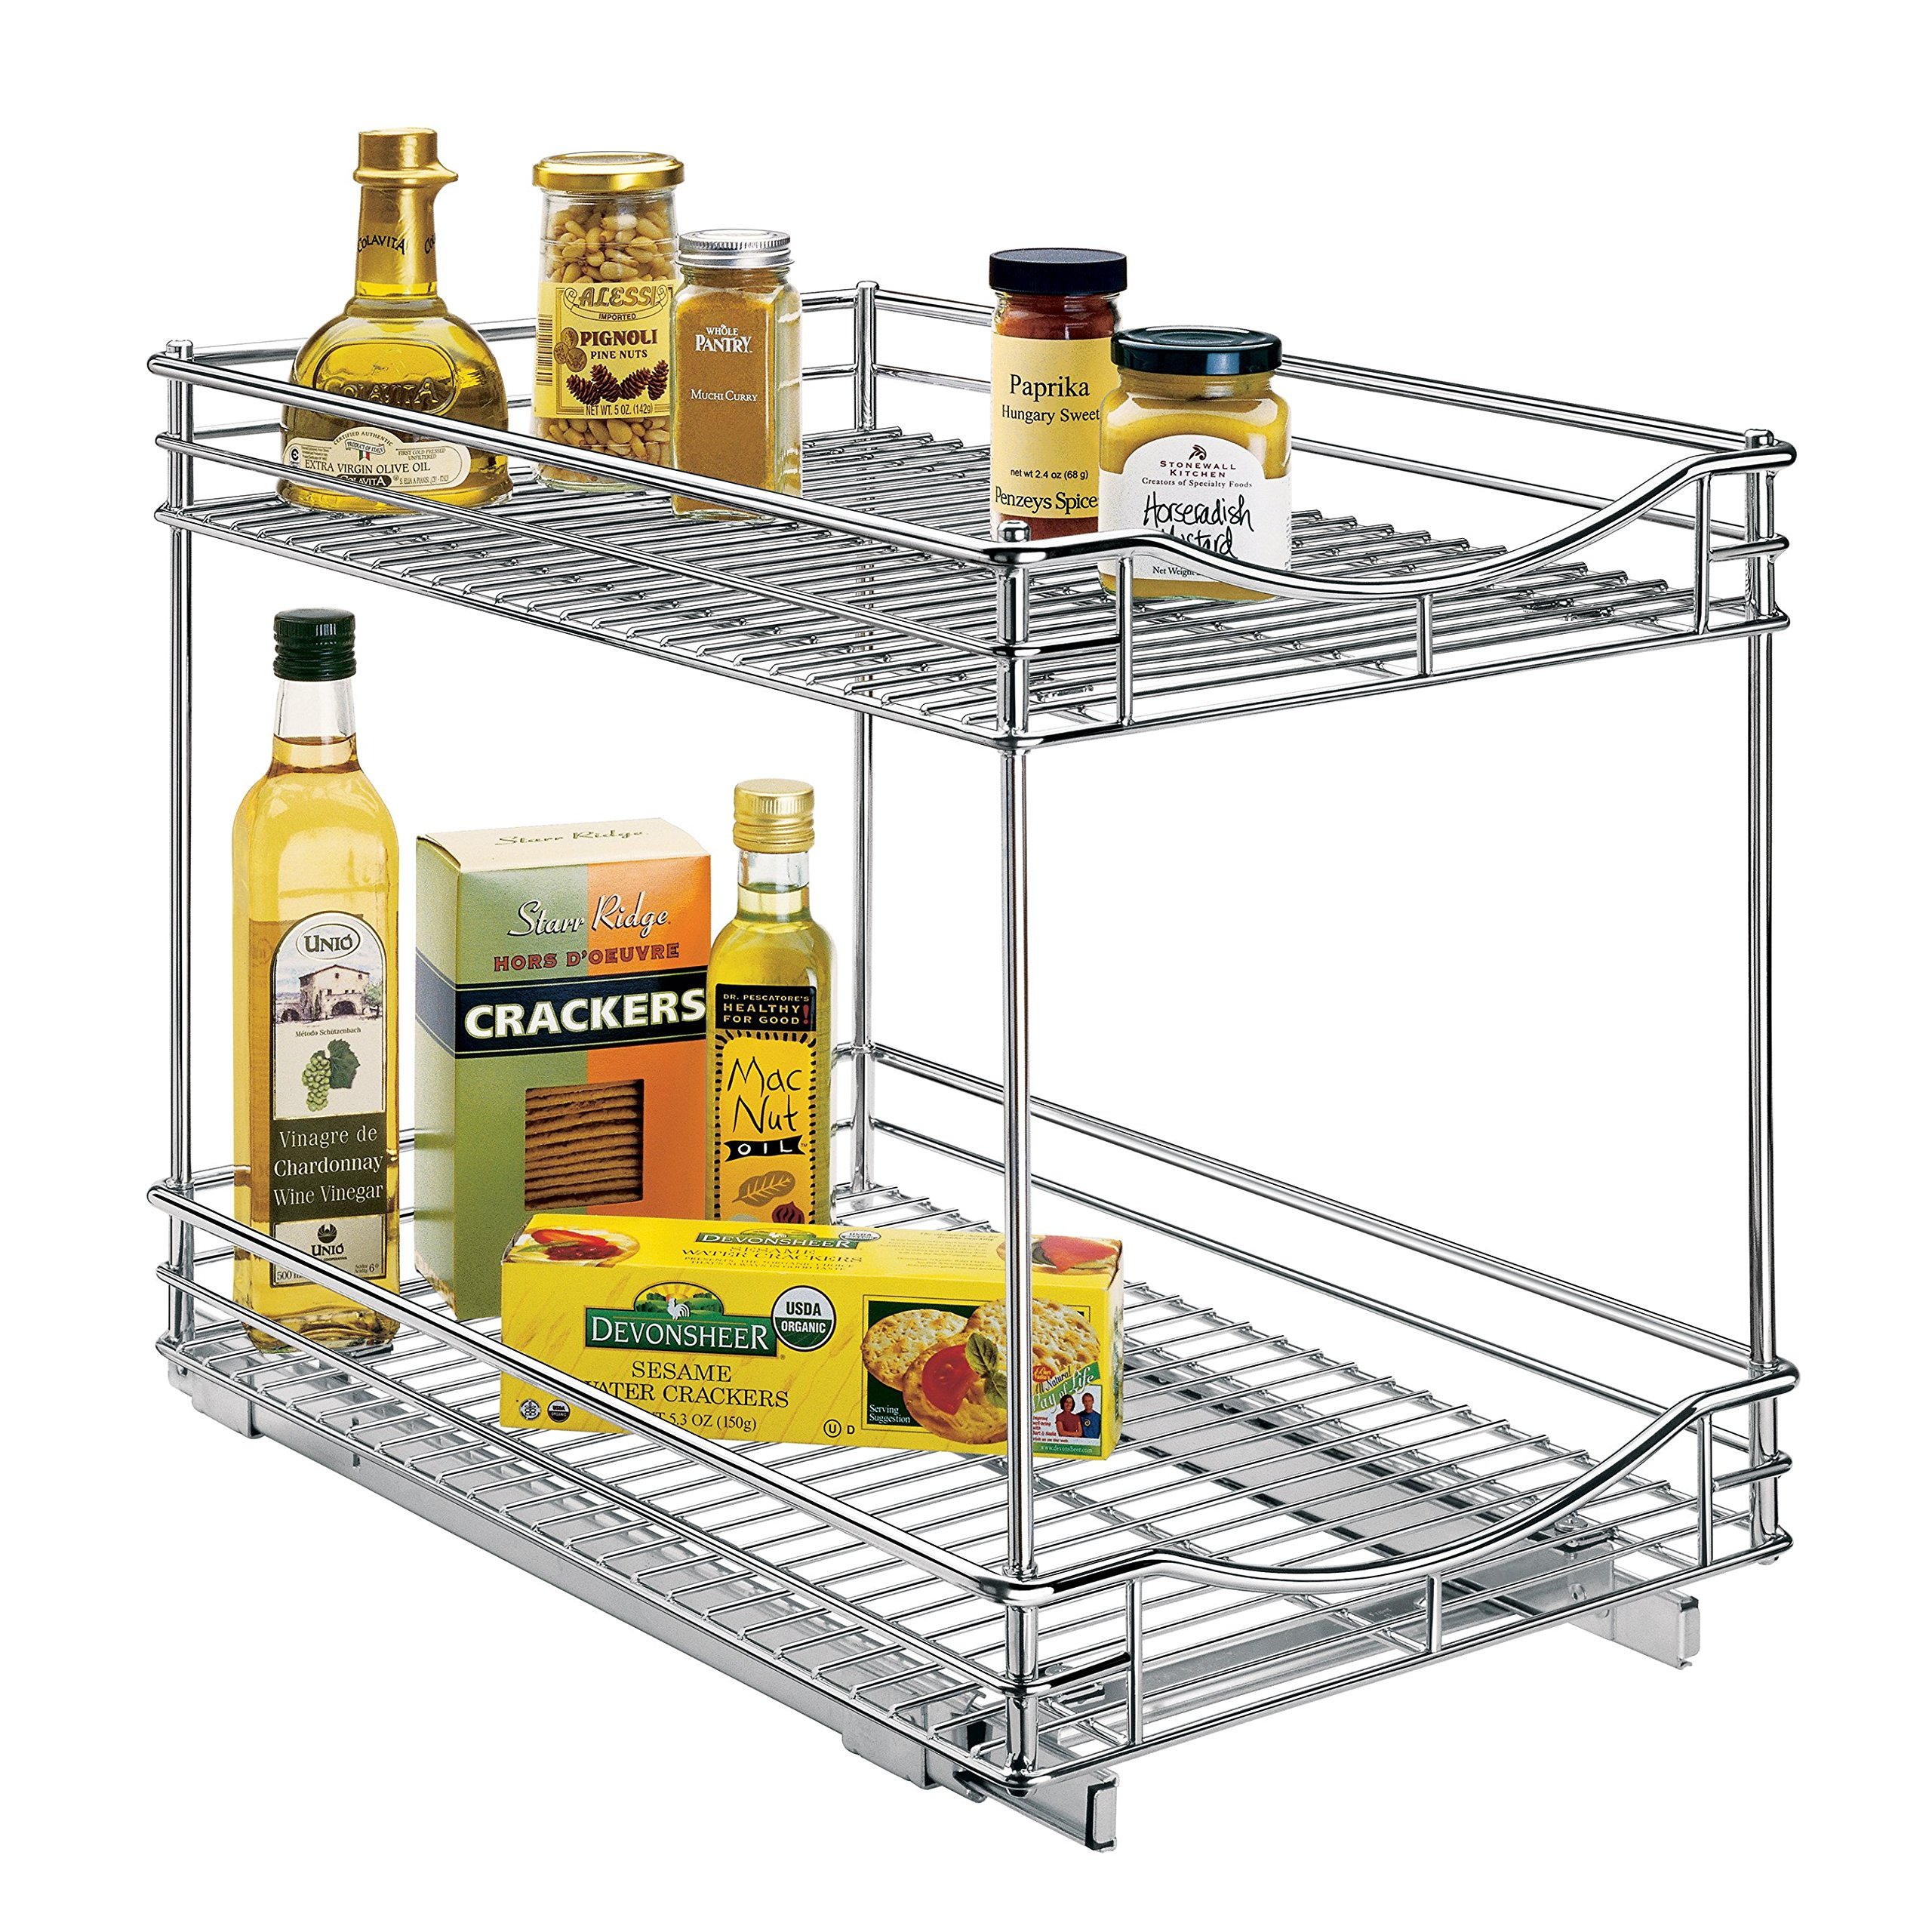 Lynk Professional Slide Out Double Shelf - Pull Out Two Tier Sliding Under Cabinet Organizer - 14 inch wide x 21 inch deep - Chrome -Multiple Sizes Available